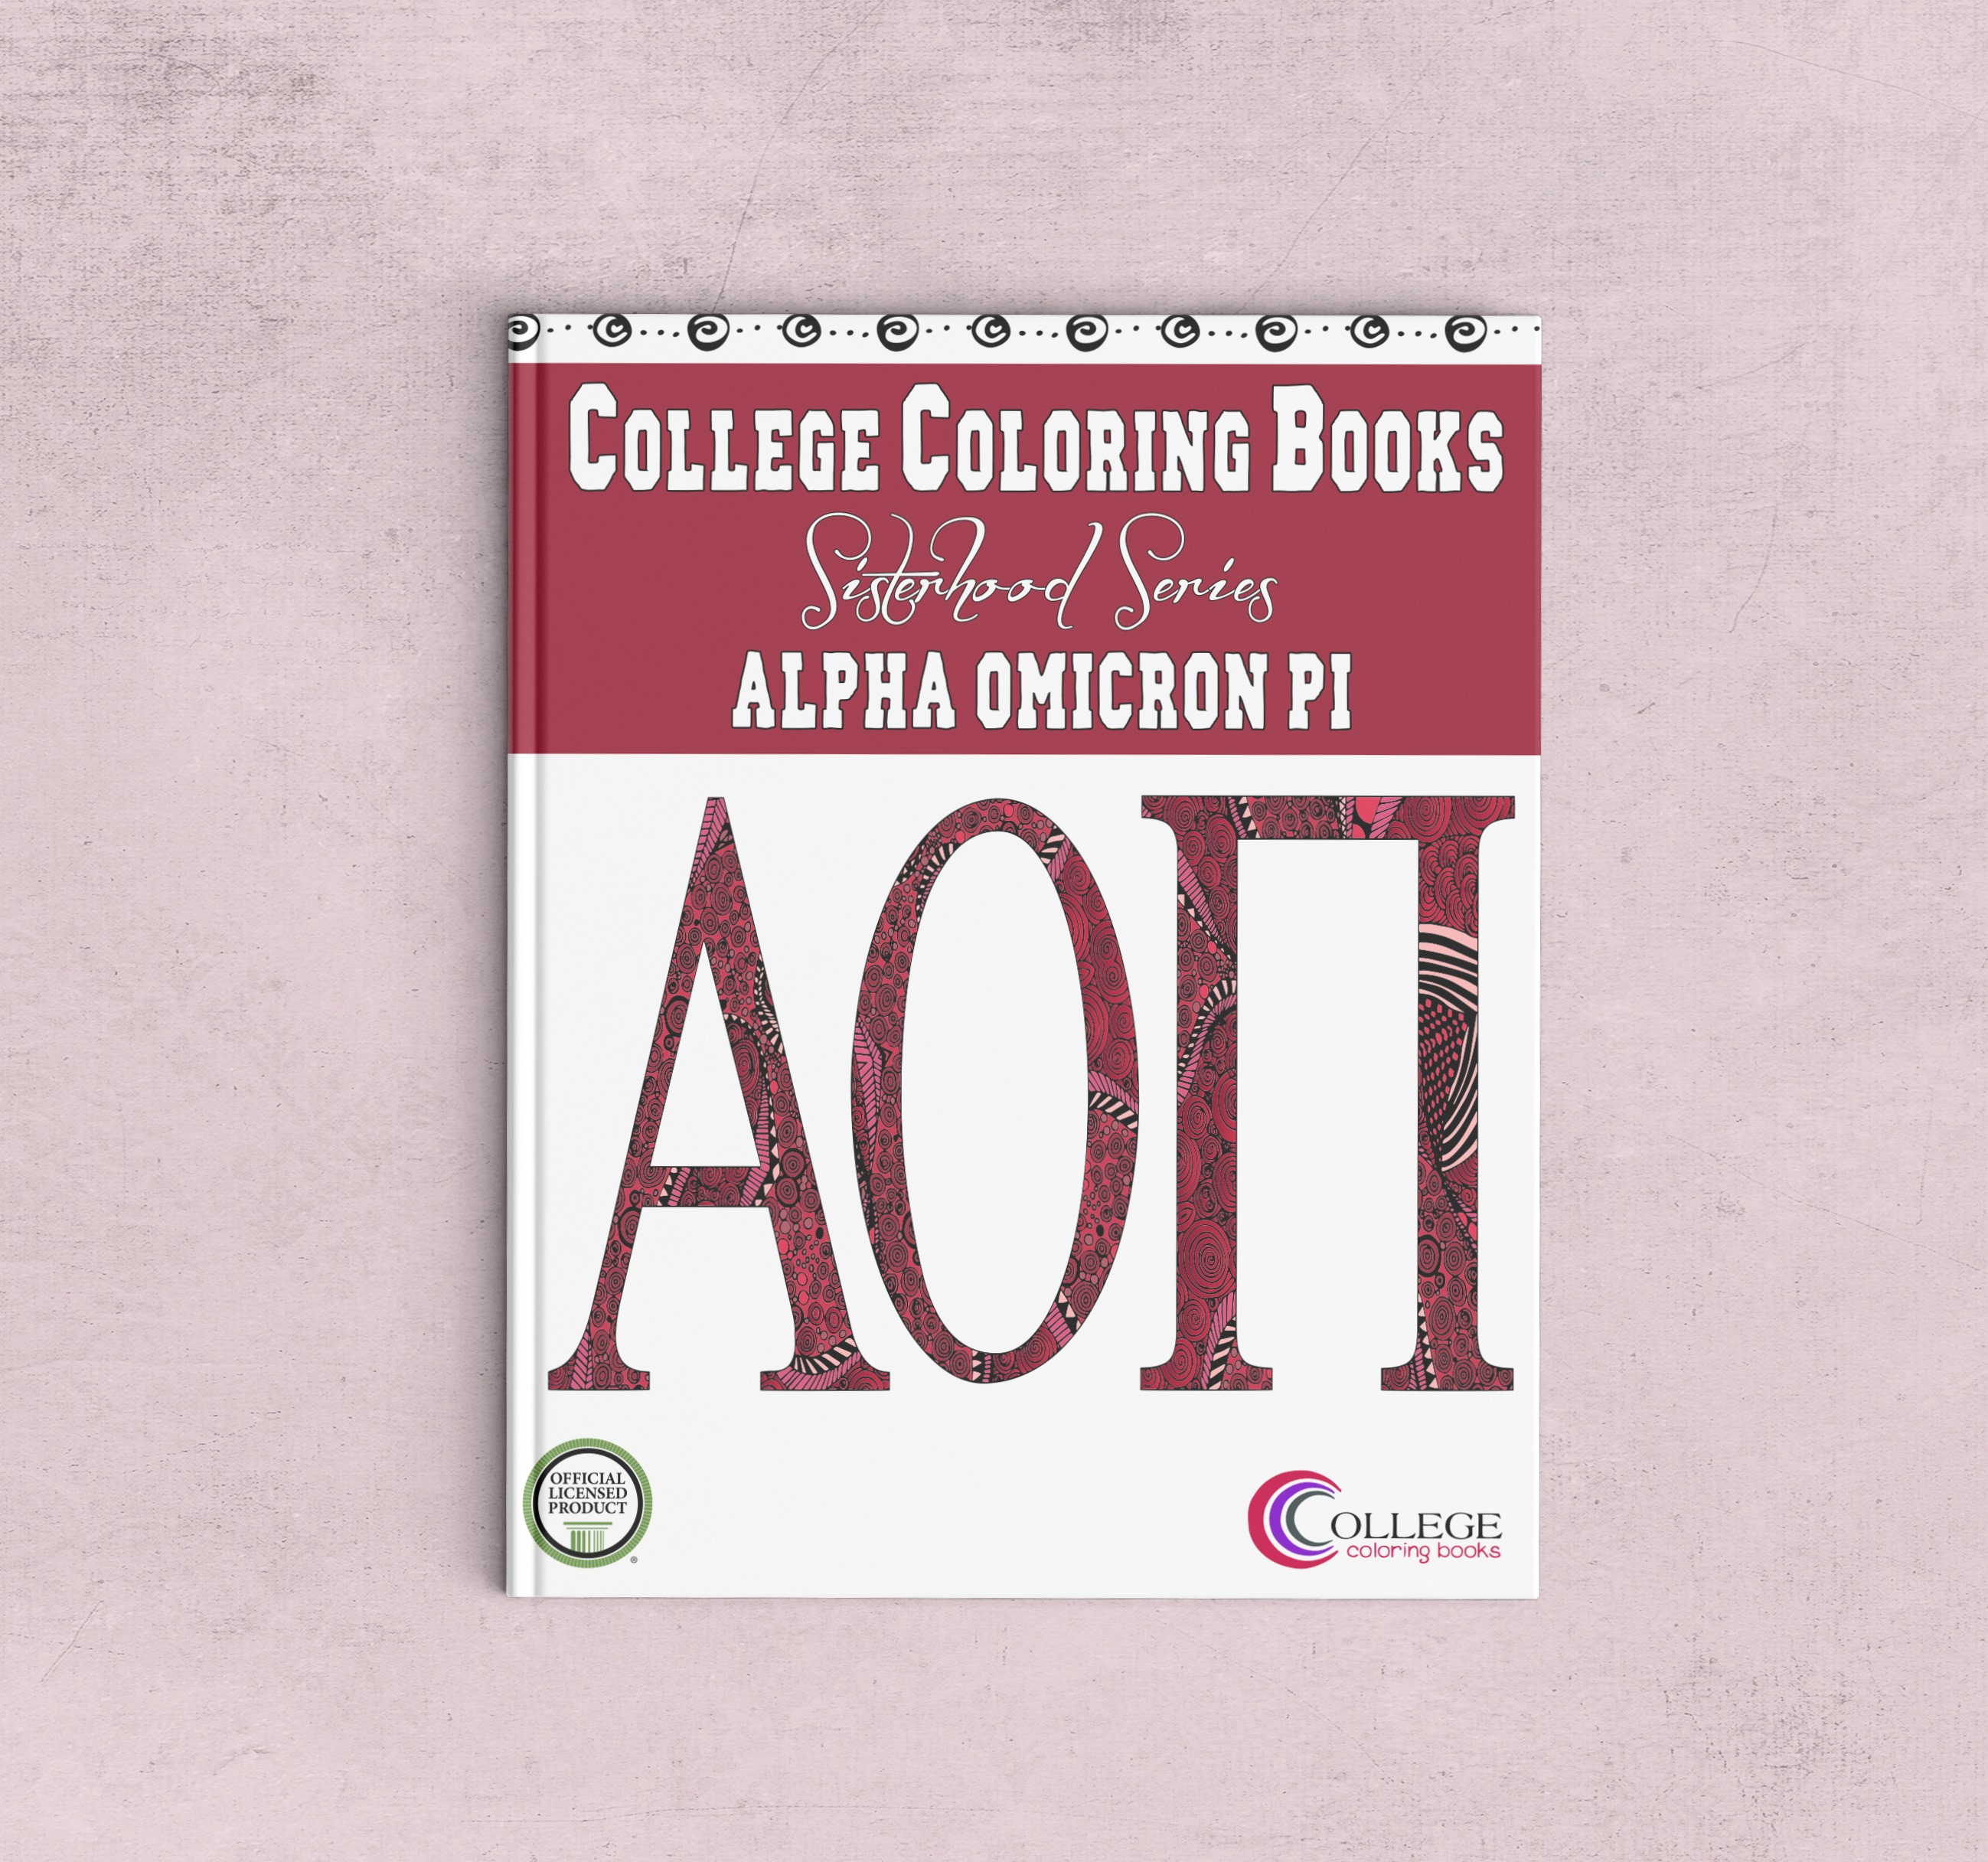 College Cookbook Cover : Alpha omicron pi adult coloring book college books